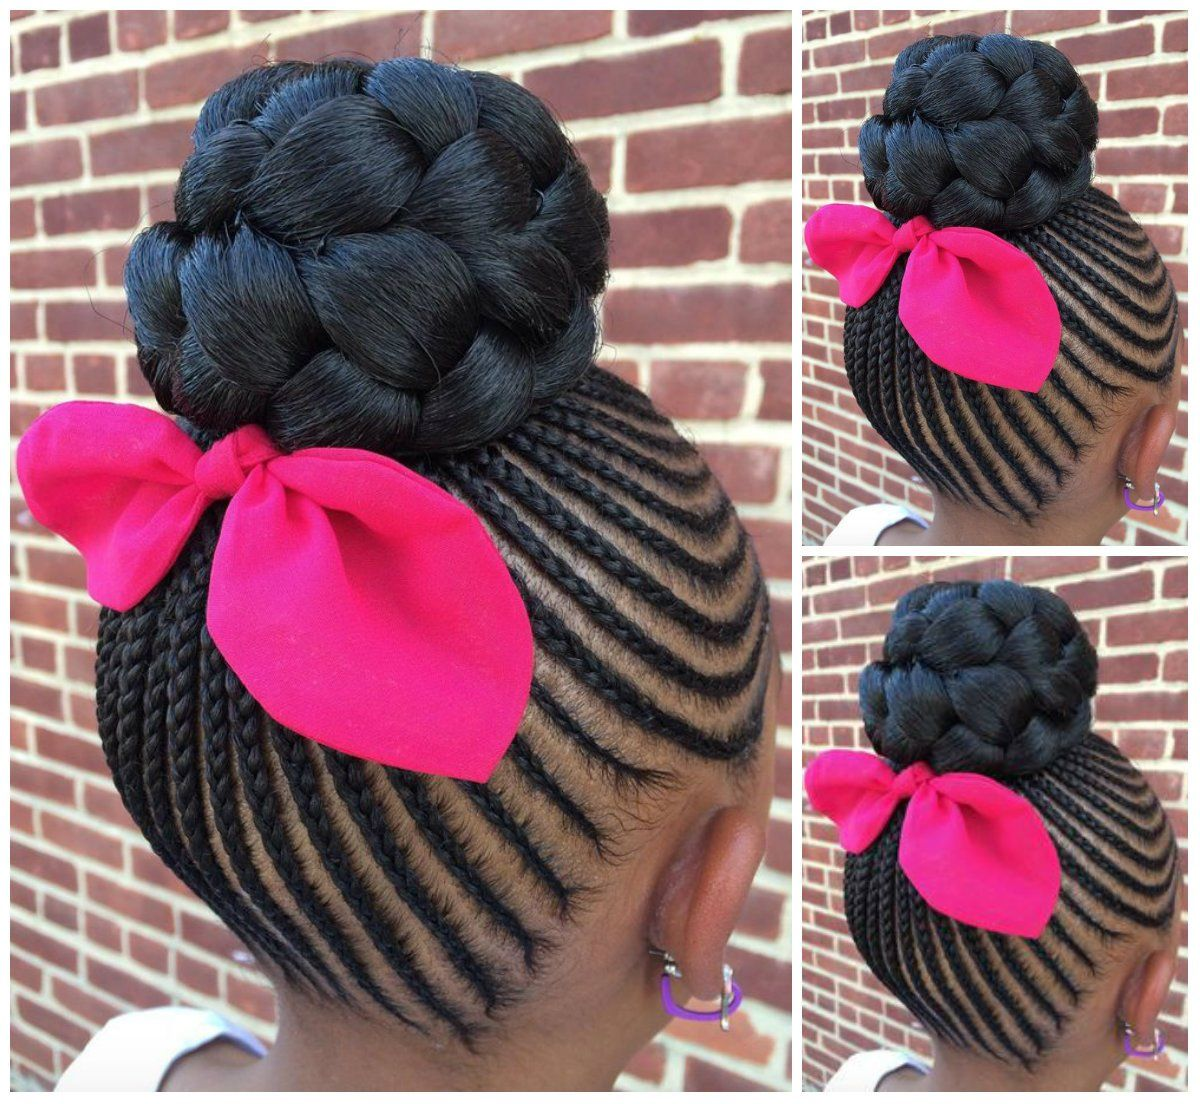 29 Braided Cornrows With Buns For Little Black Girls Afrocosmopolitan Black Natural Hairstyles Little Girl Hairstyles Kids Braided Hairstyles